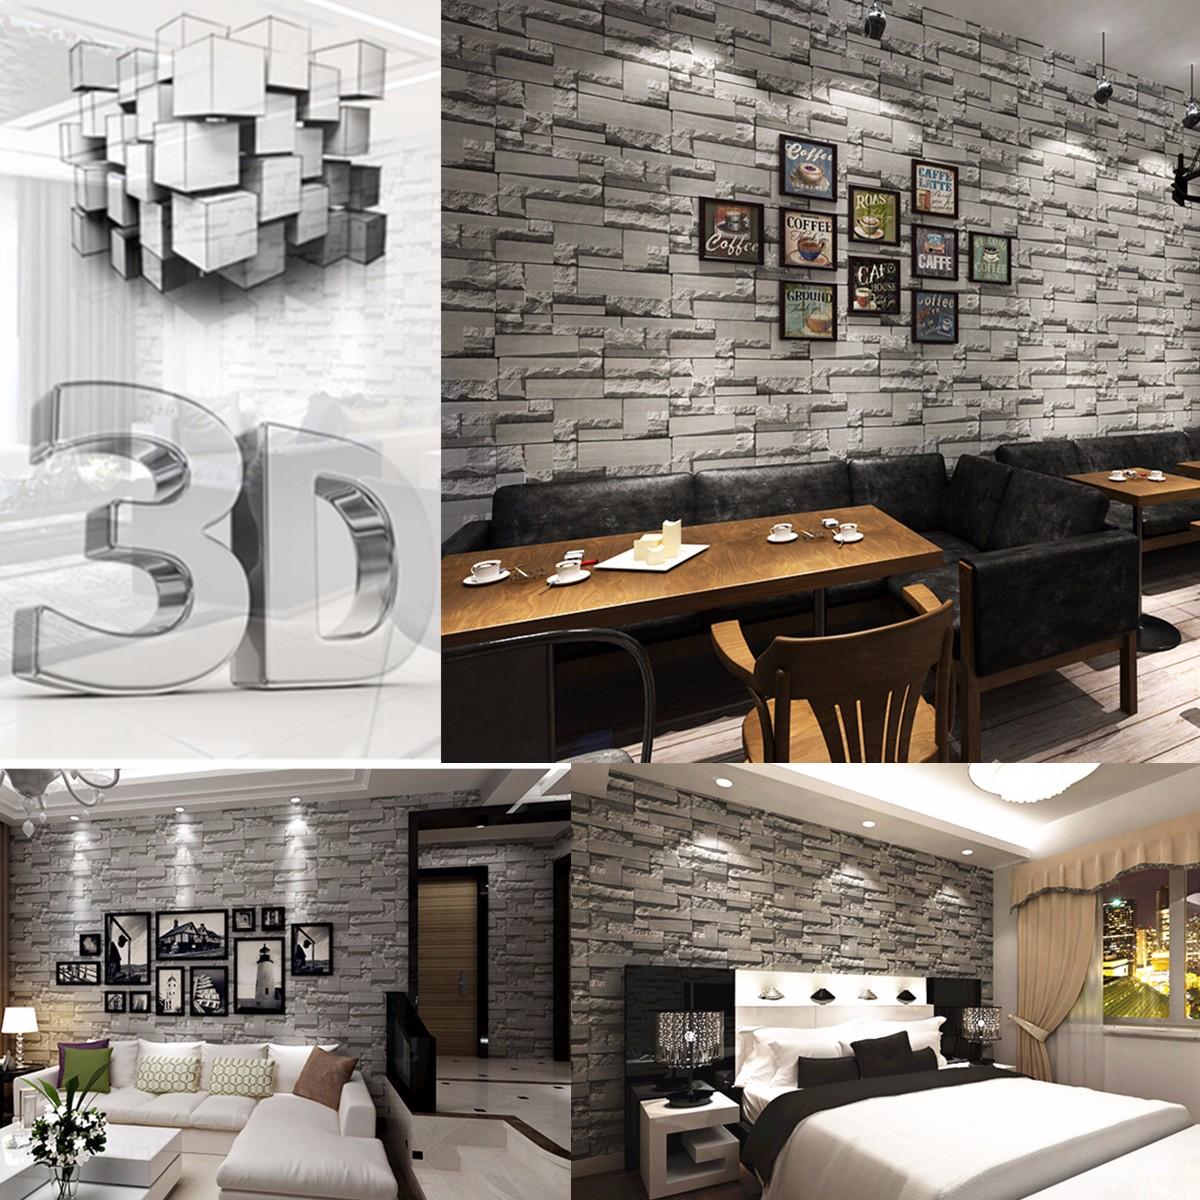 3d Brique Papier Peint Fond Mur Wallpaper Pr Decoration Salon H Tel Bar Achat Vente